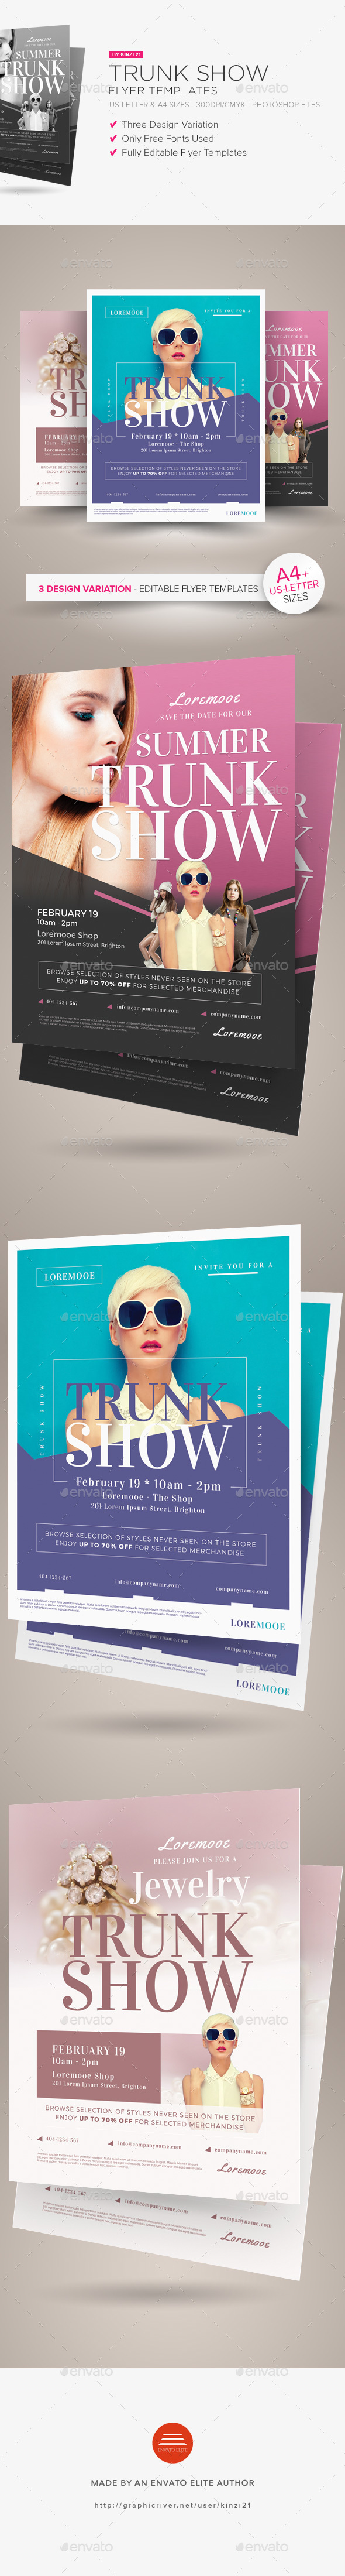 Trunk Show Flyer Templates - Miscellaneous Events